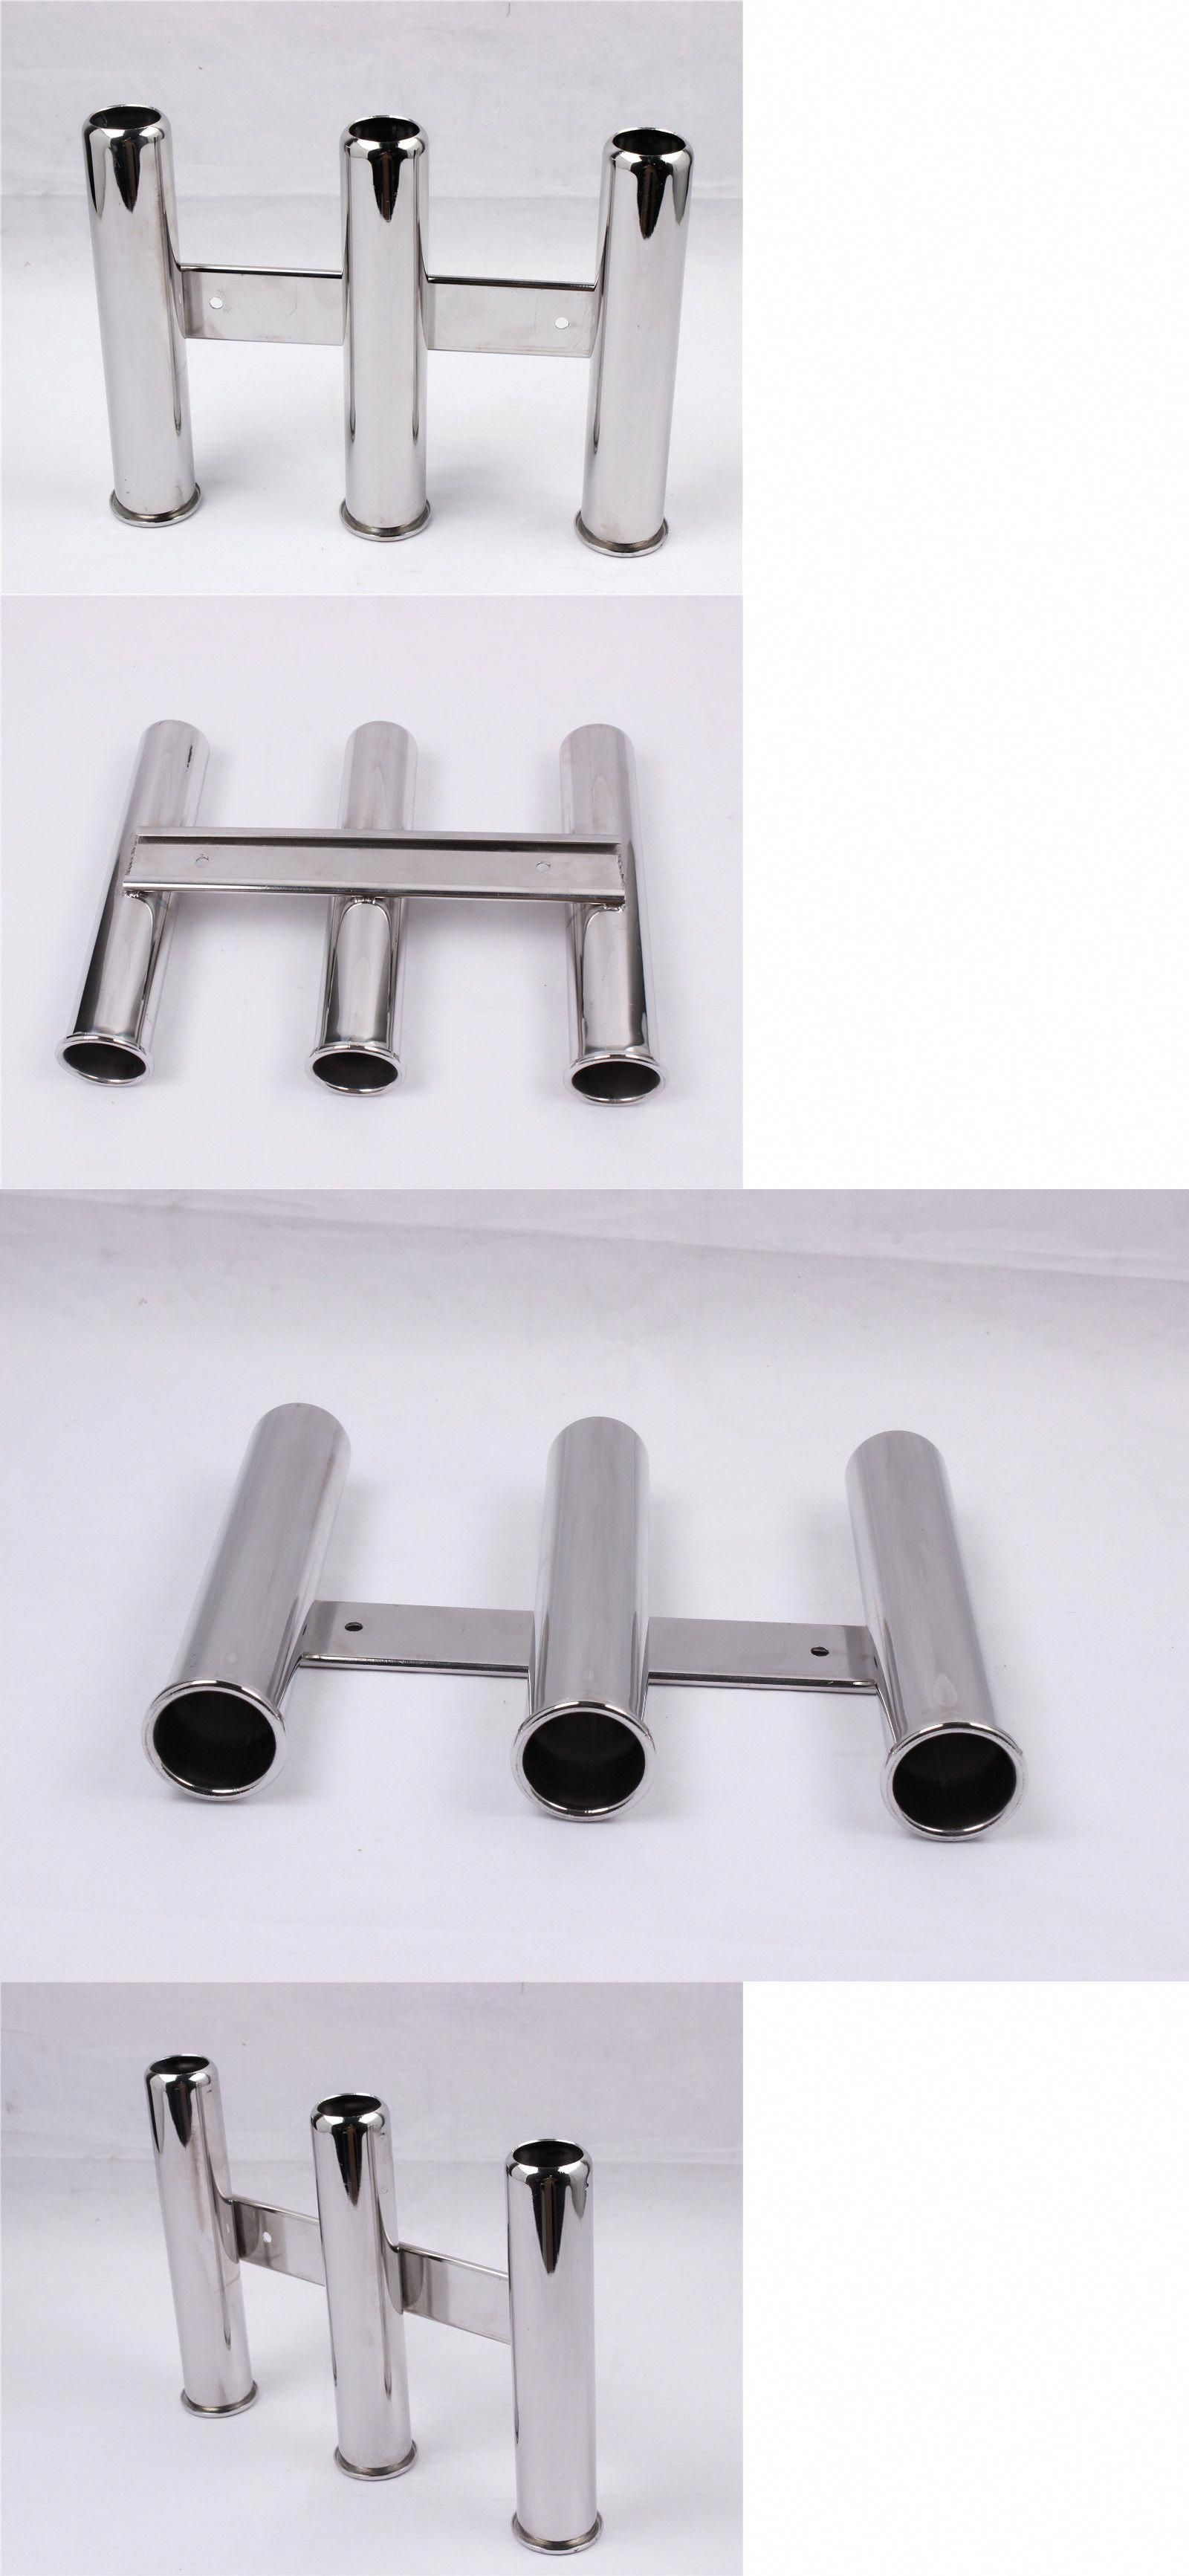 Pro Marine Boat Fishing Rod Pole Holder Rack Rest Stand 316 Stainless Steel